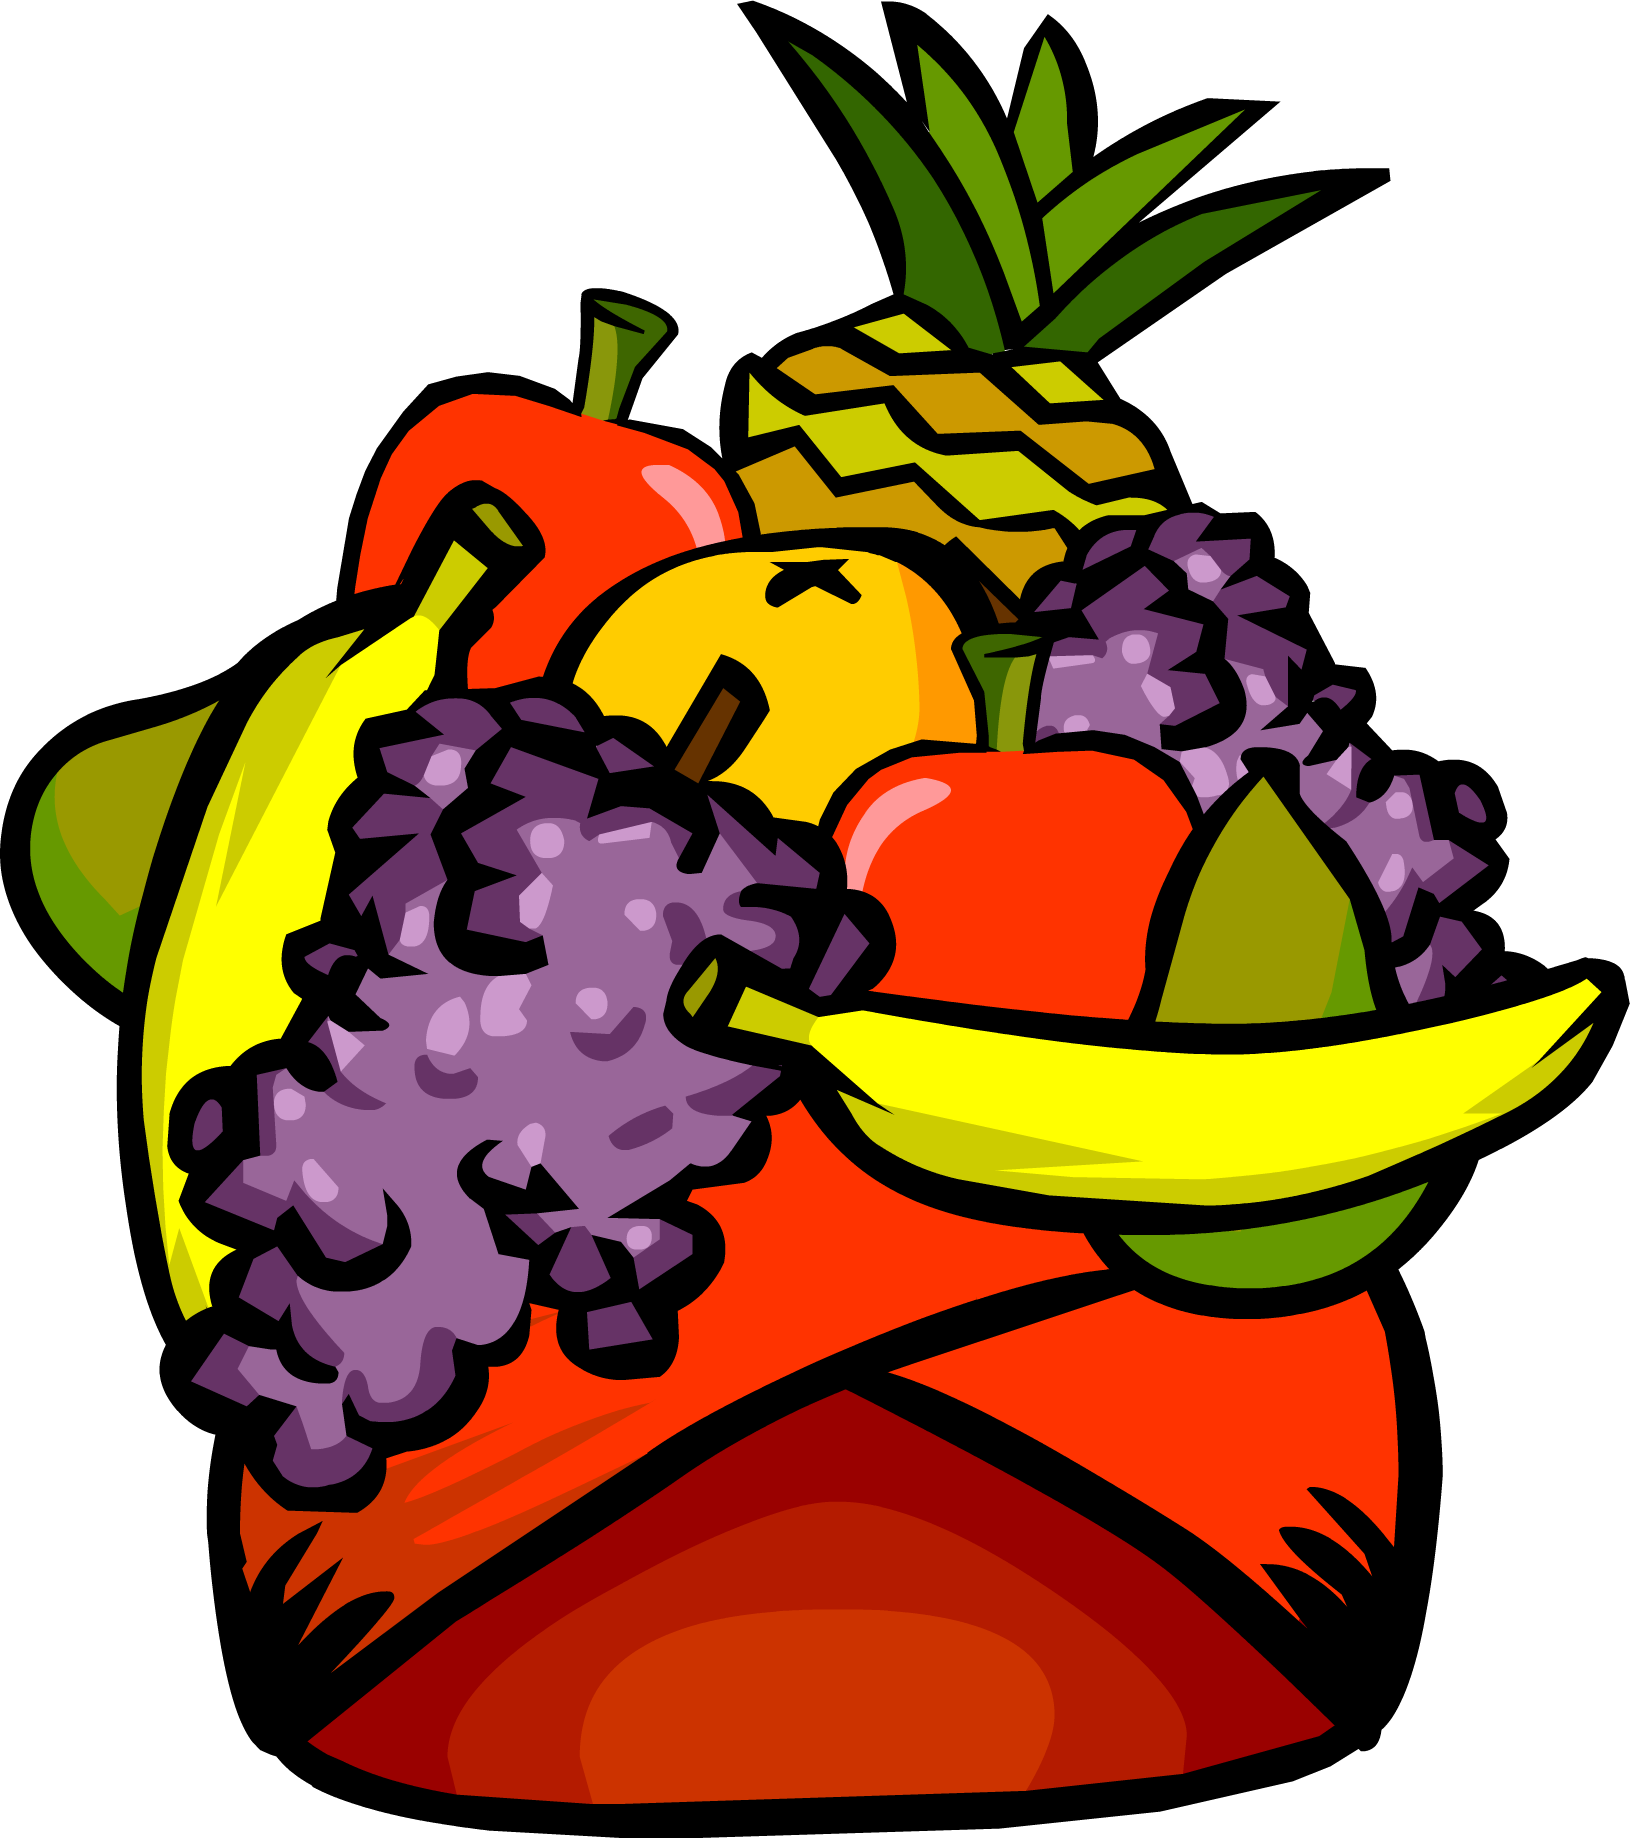 Hat clipart fruit. Image headdress clothing icon